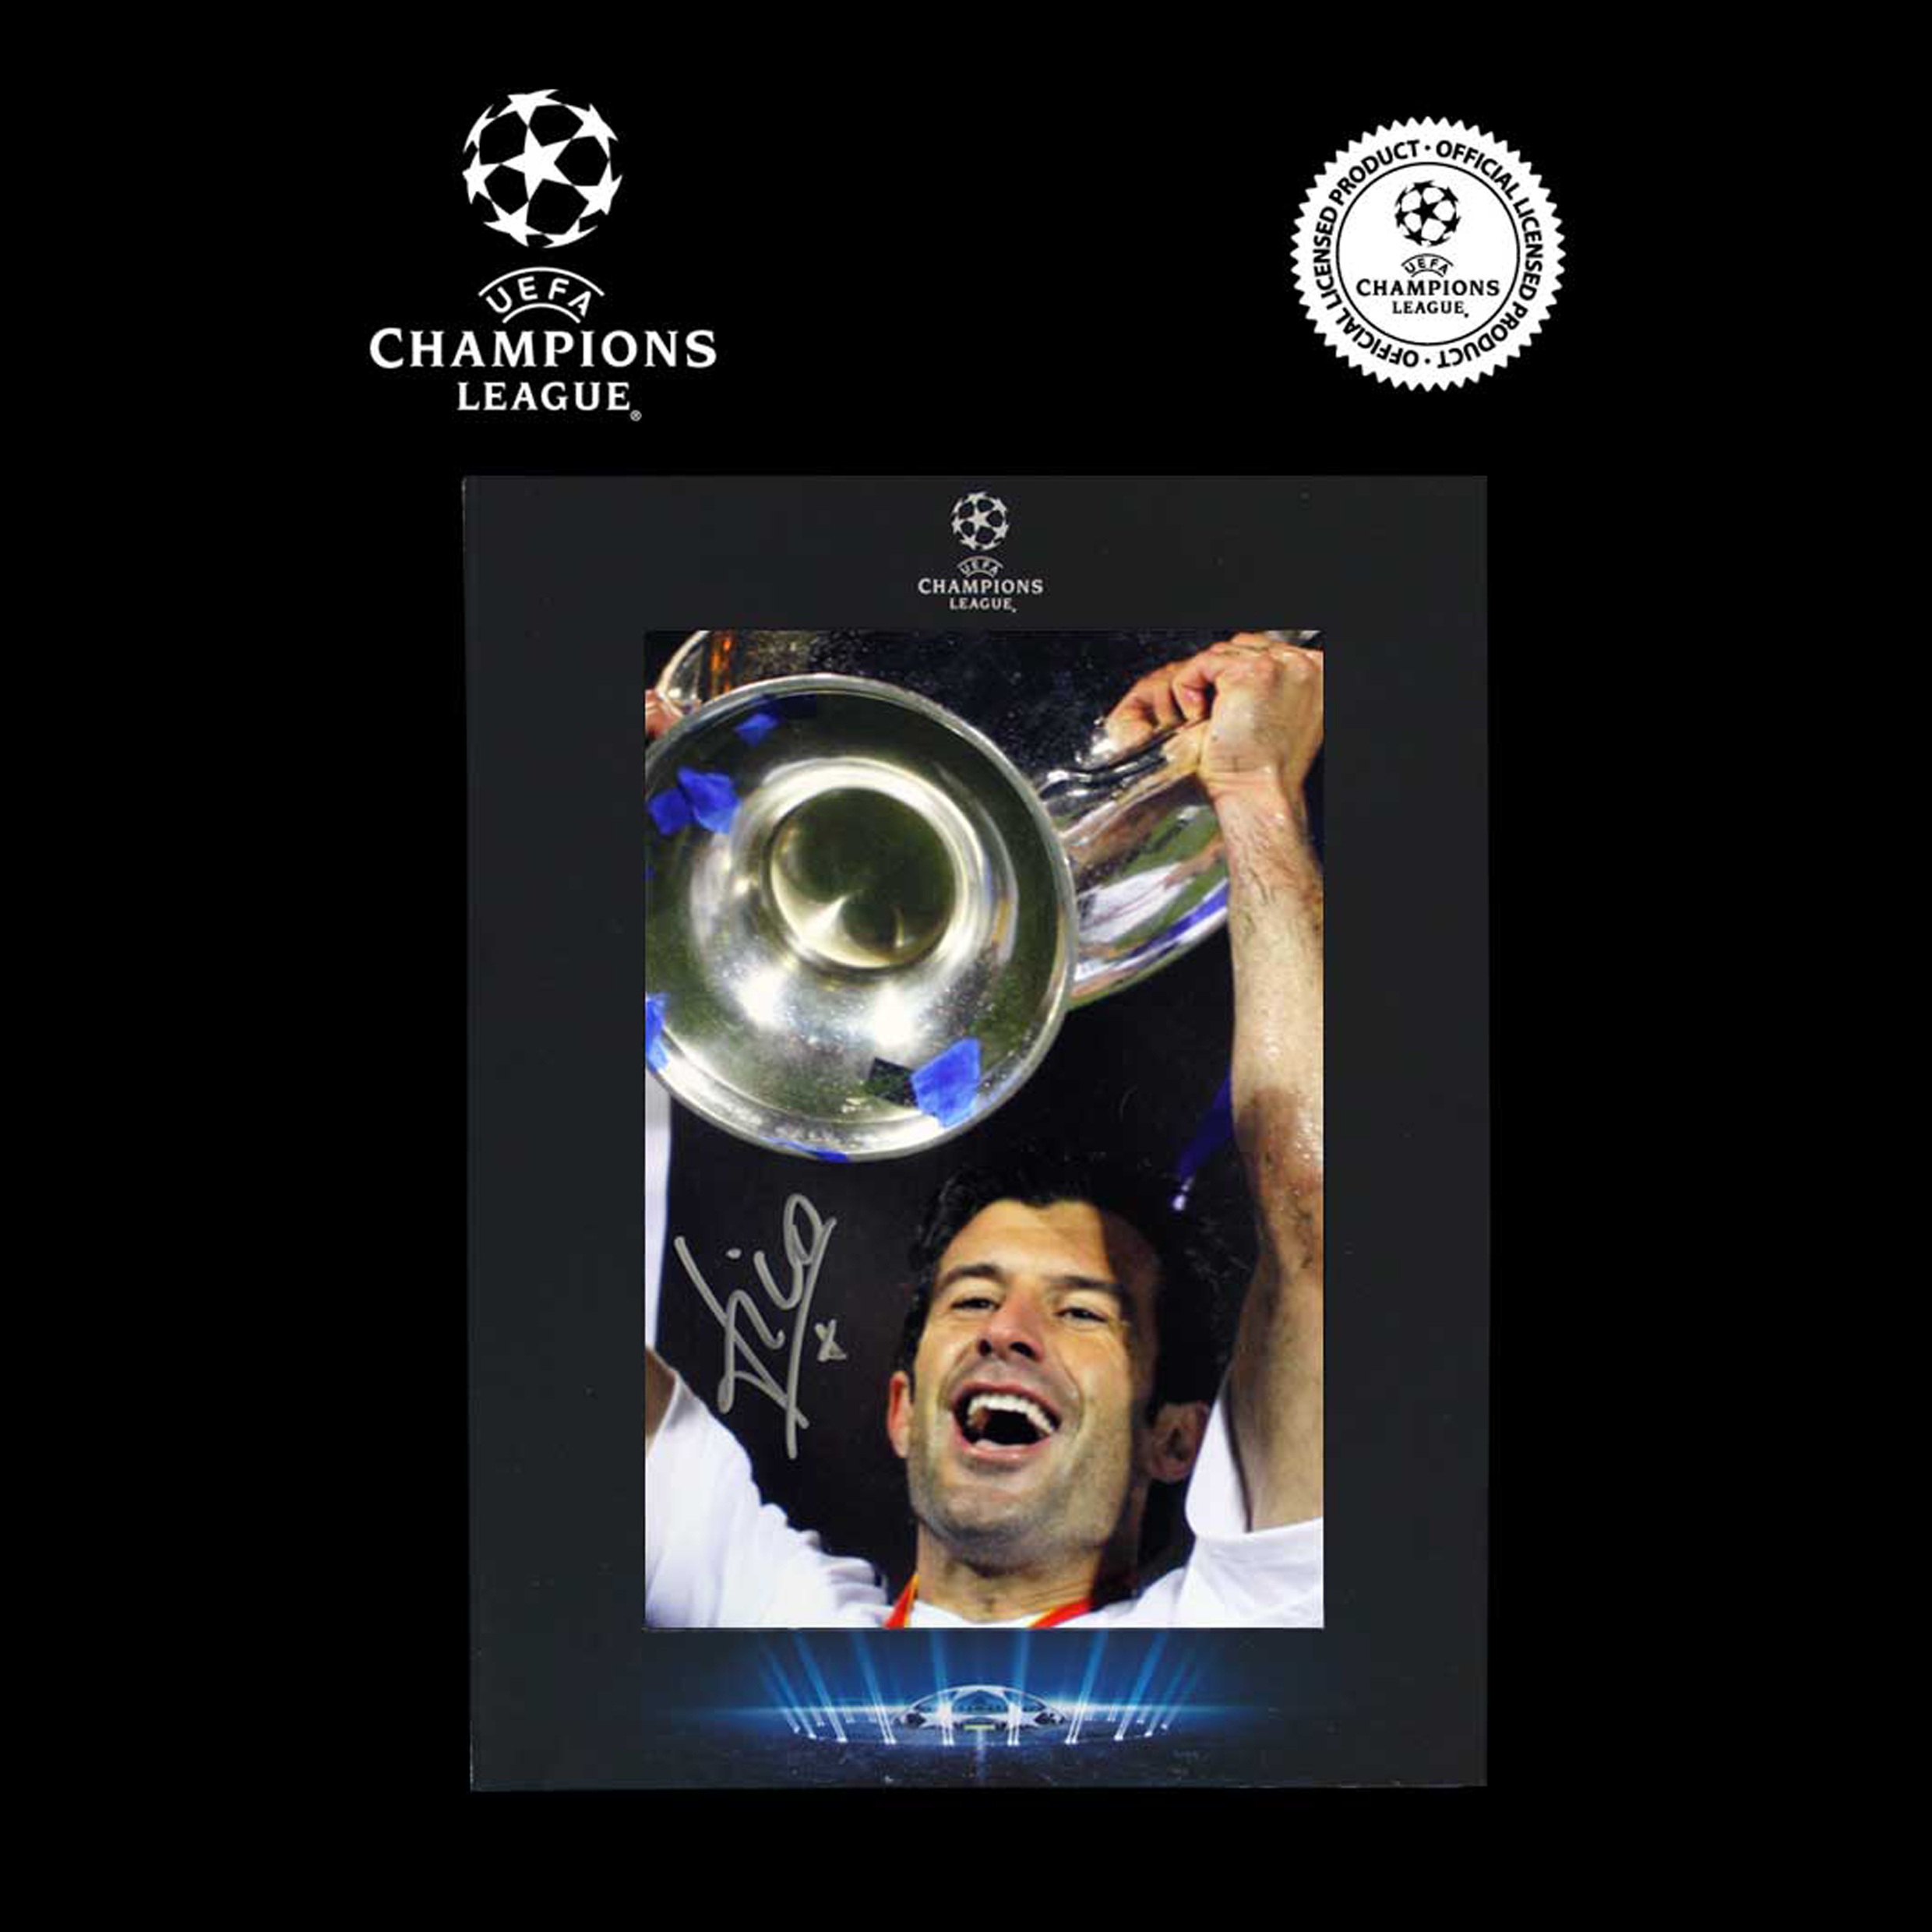 UEFA Champions League Luis Figo Signed Real Madrid Photo in Deluxe Packaging: 2001-02 Winners